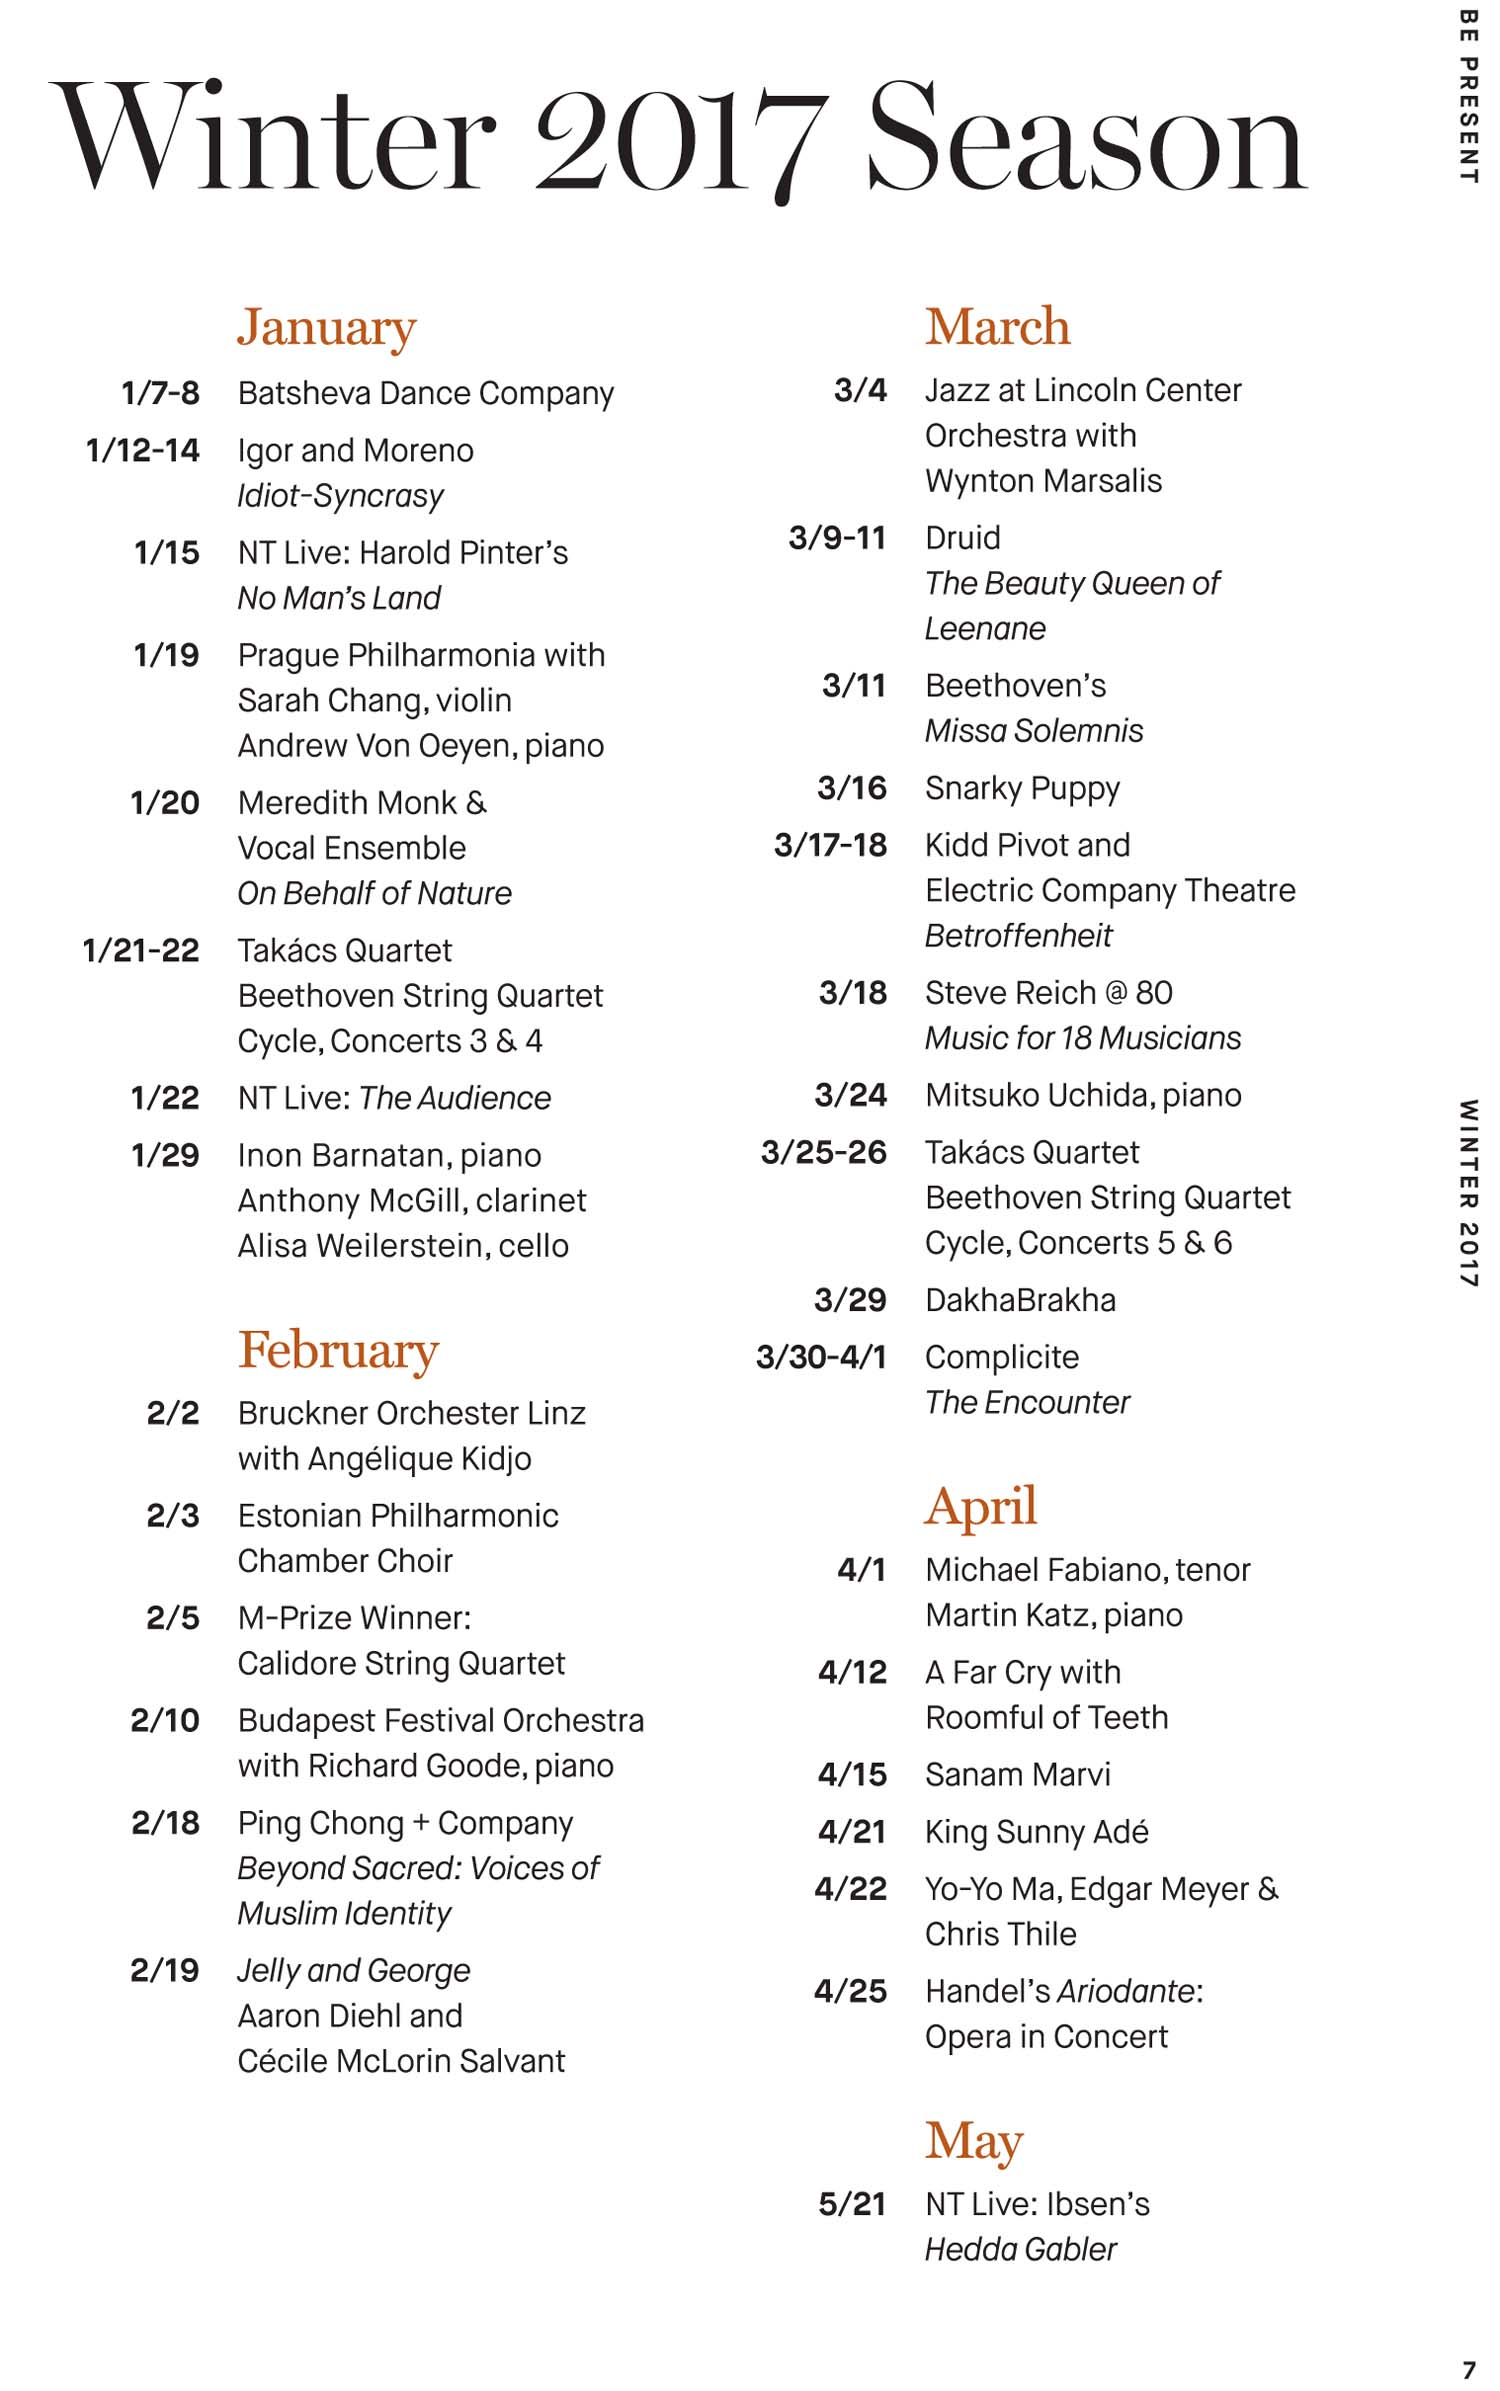 UMS Concert Program, March 29, 2017 - DakhaBrakha image